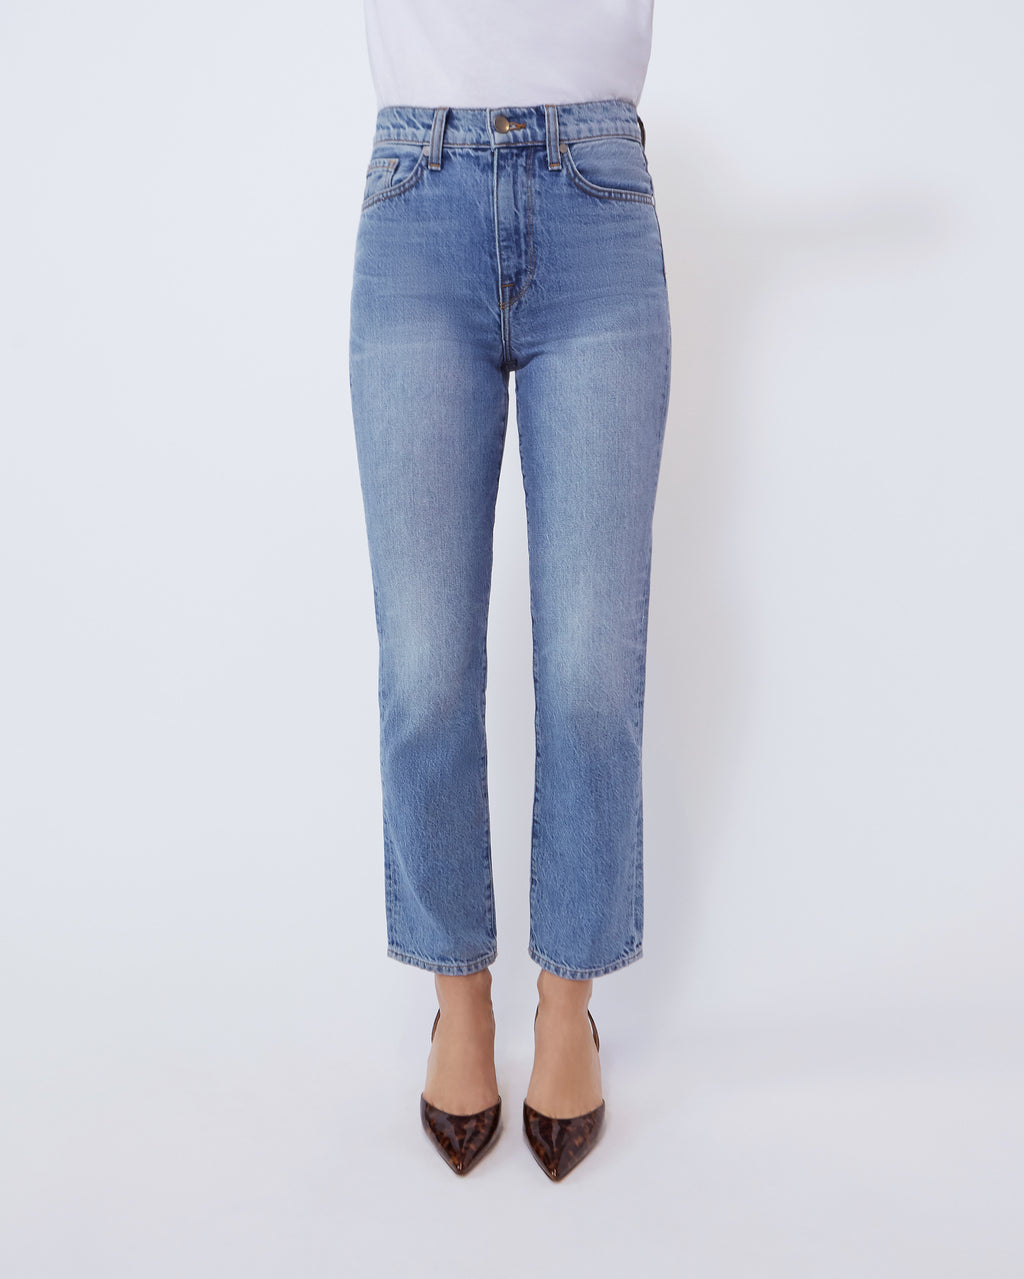 The Vintage Straight Jean in Skylight